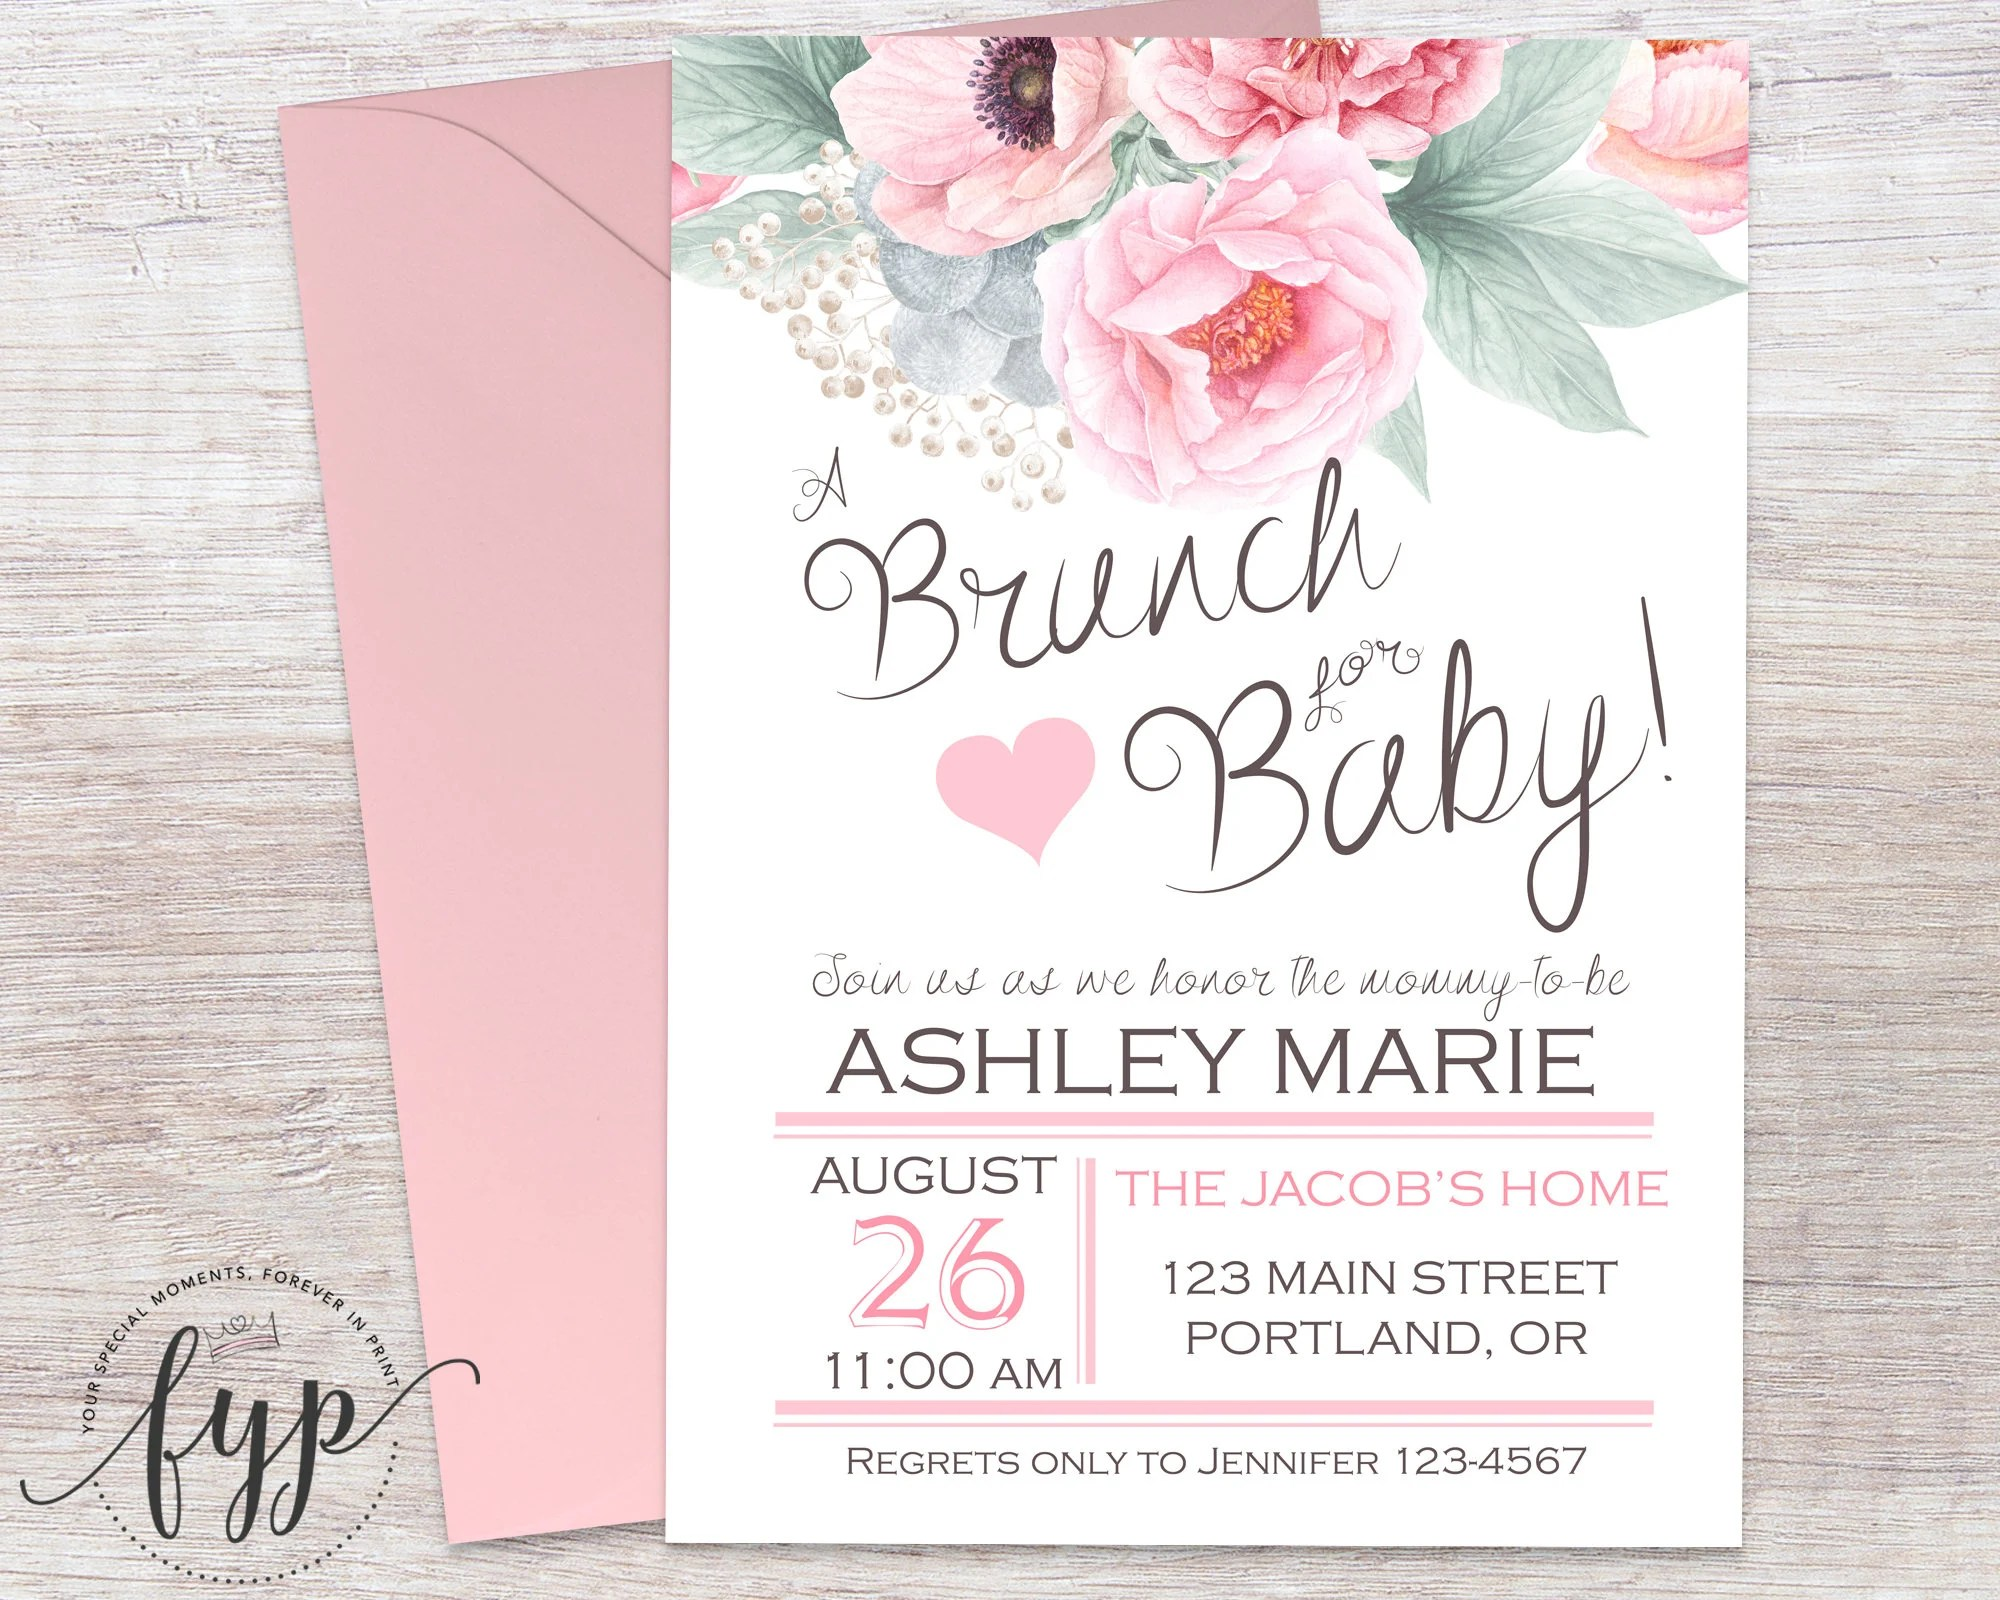 Floral Baby Shower Invitation Brunch For Baby Invitation   Engagement  Invitations Online Templates  Engagement Invitations Online Templates